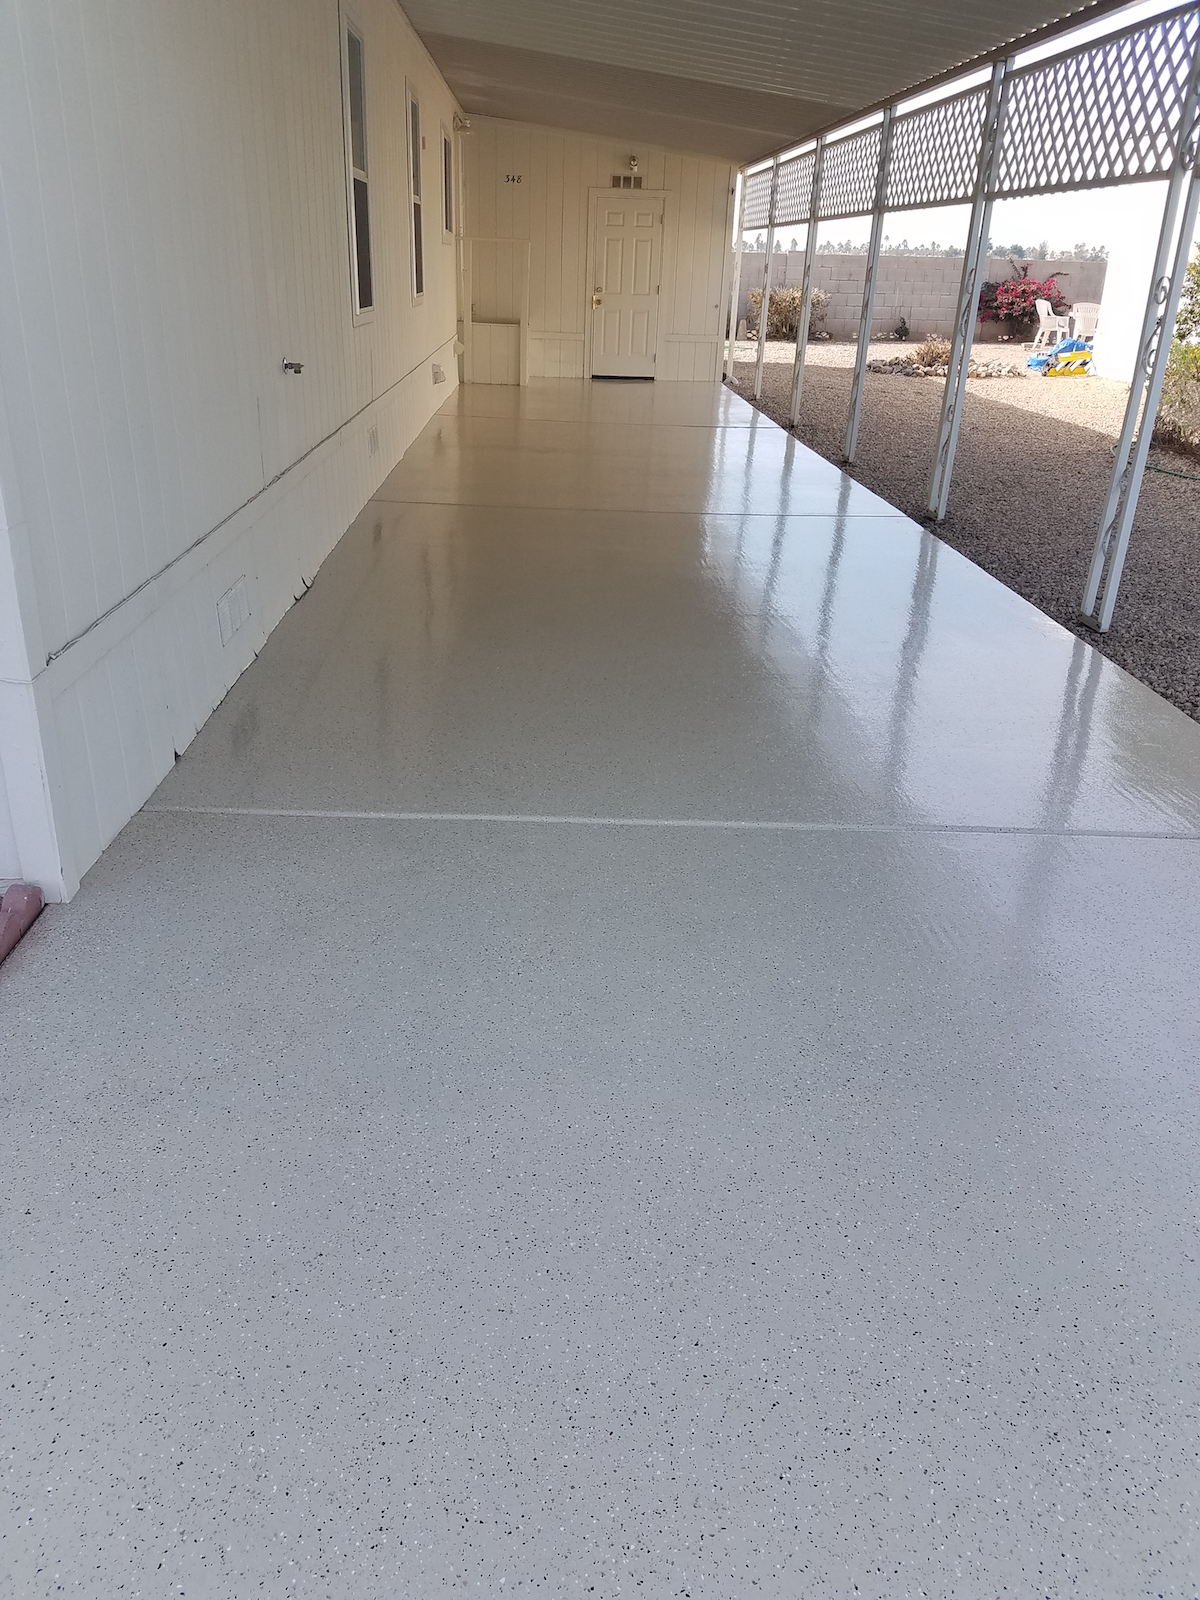 five level garage grout epoxy cost cracks frequently to floors floor wordpress self questions filling faq asked with img leveling